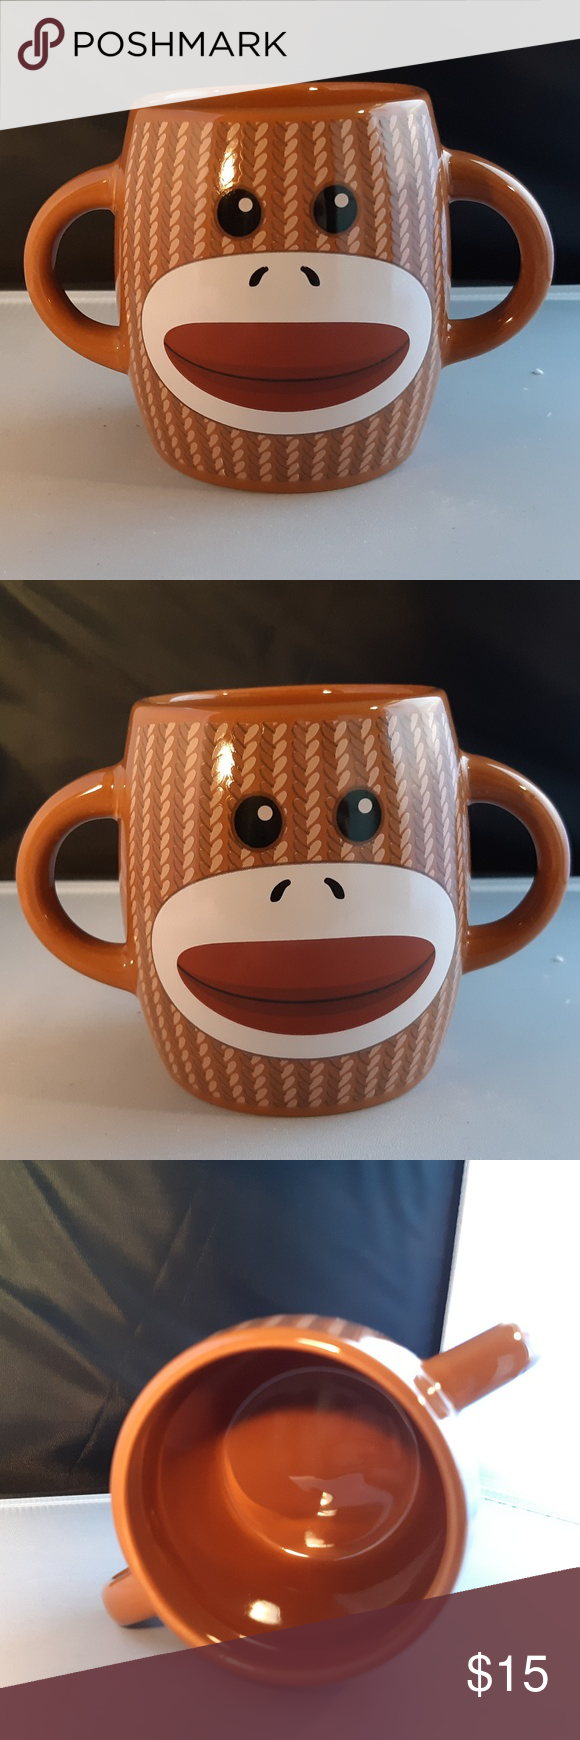 Sock Monkey Coffee Mug 16 oz Adorable Sock Monkey Coffee/Tea Mug Cup  Excellent condition Kitchen Coffee & Tea Accessories #sockmoneky Sock Monkey Coffee Mug 16 oz Adorable Sock Monkey Coffee/Tea Mug Cup  Excellent condition Kitchen Coffee & Tea Accessories #sockmoneky